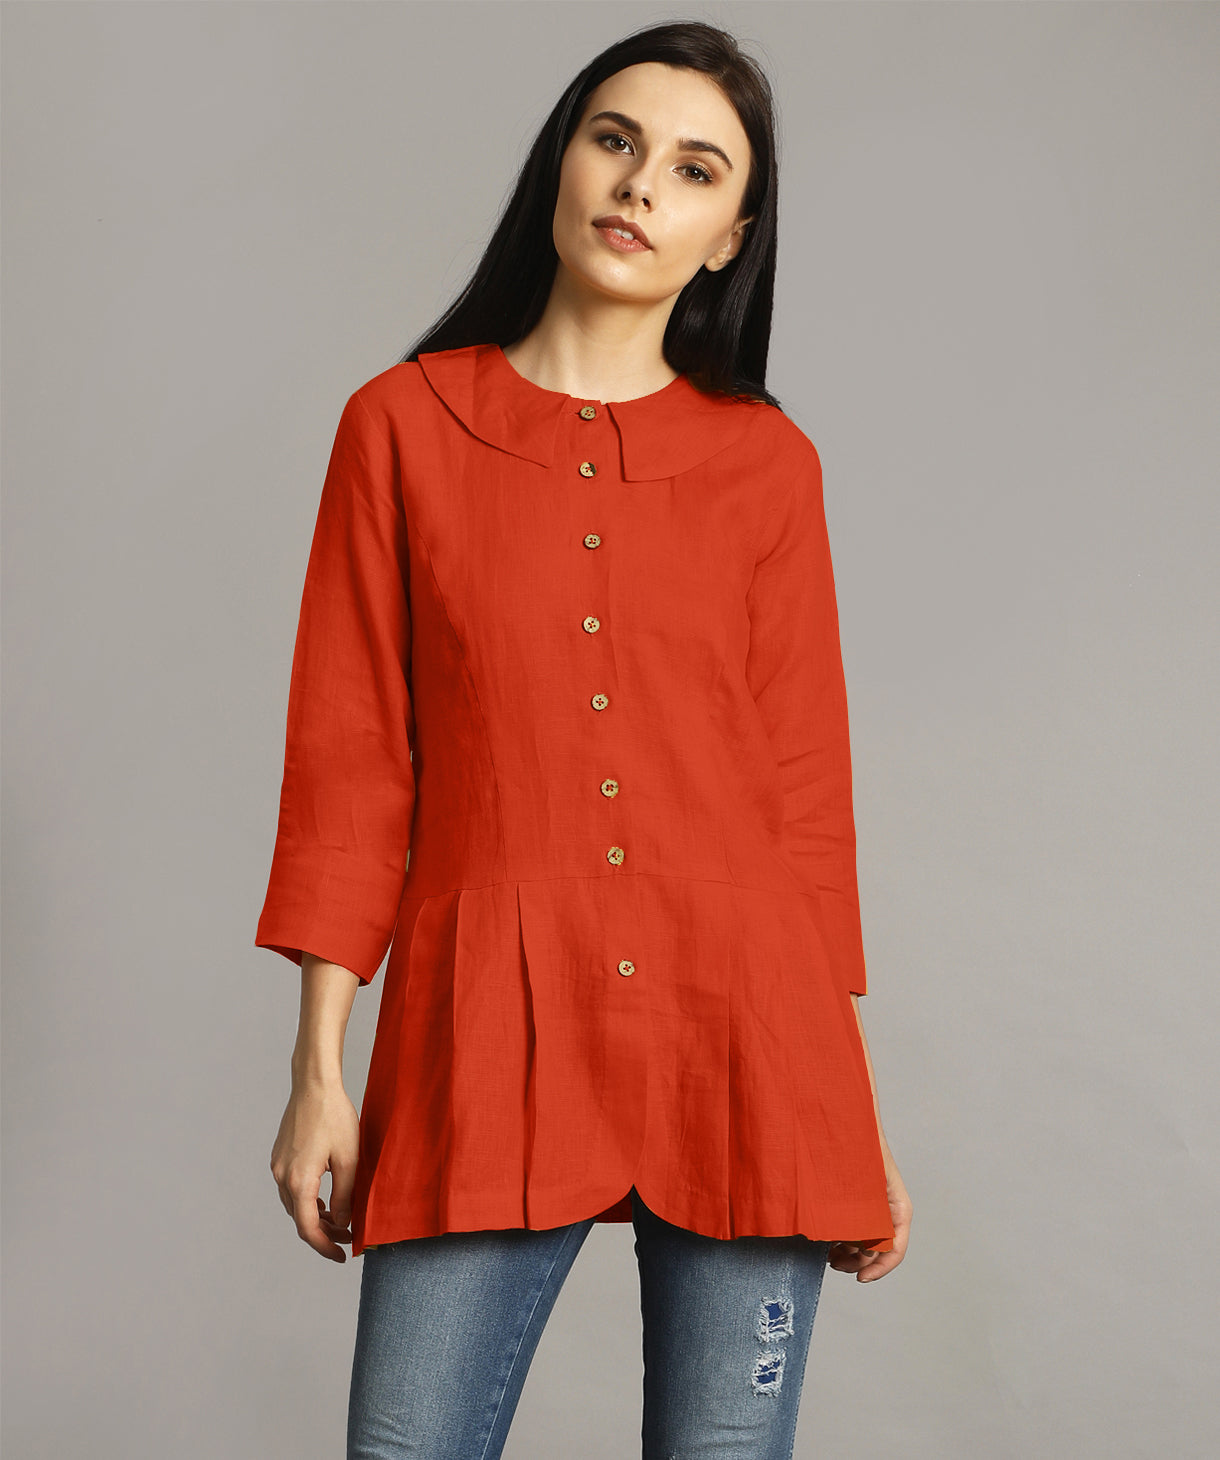 Uptownie Plus Rust Peter Pan Neck Linen Tunic 1 clearance sale